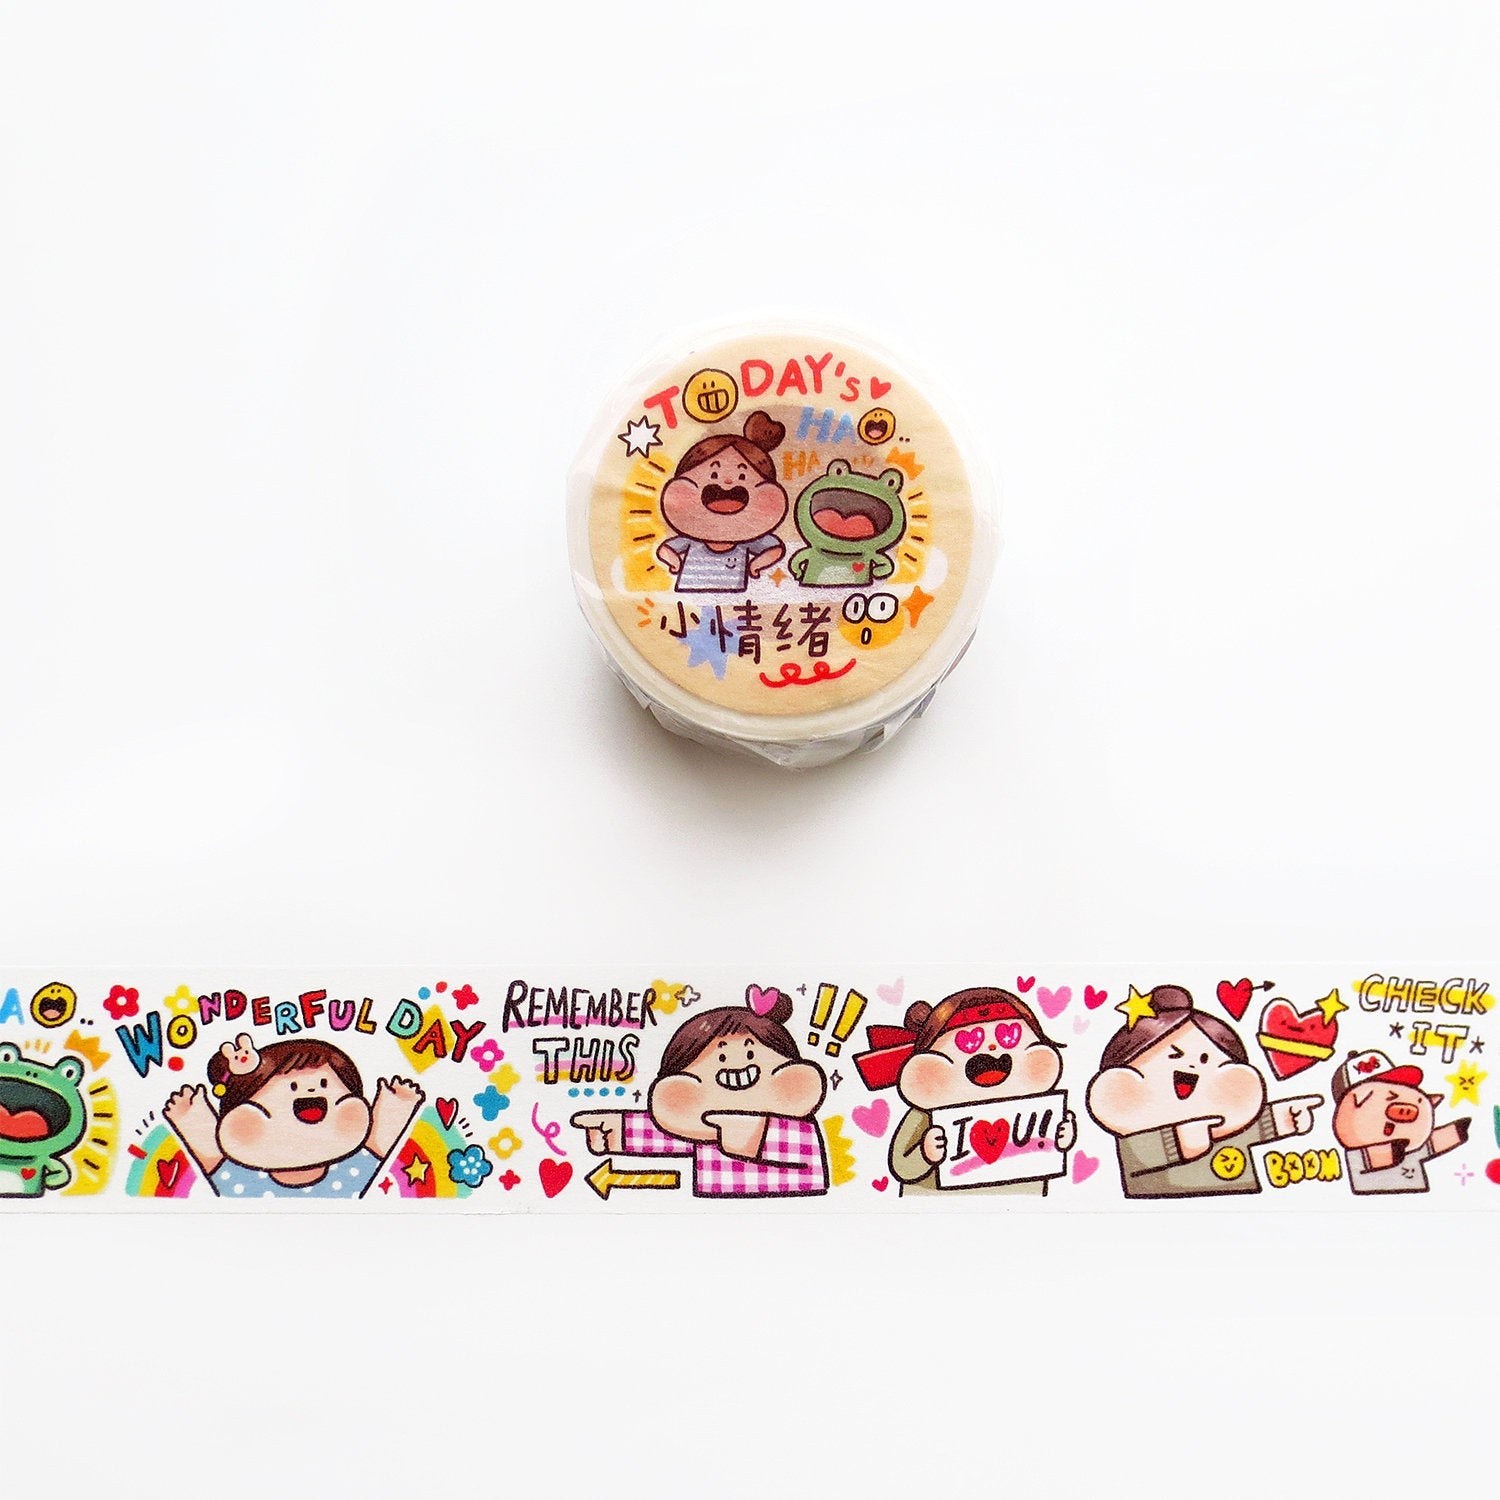 Meatball Washi Tape: Today's Mood